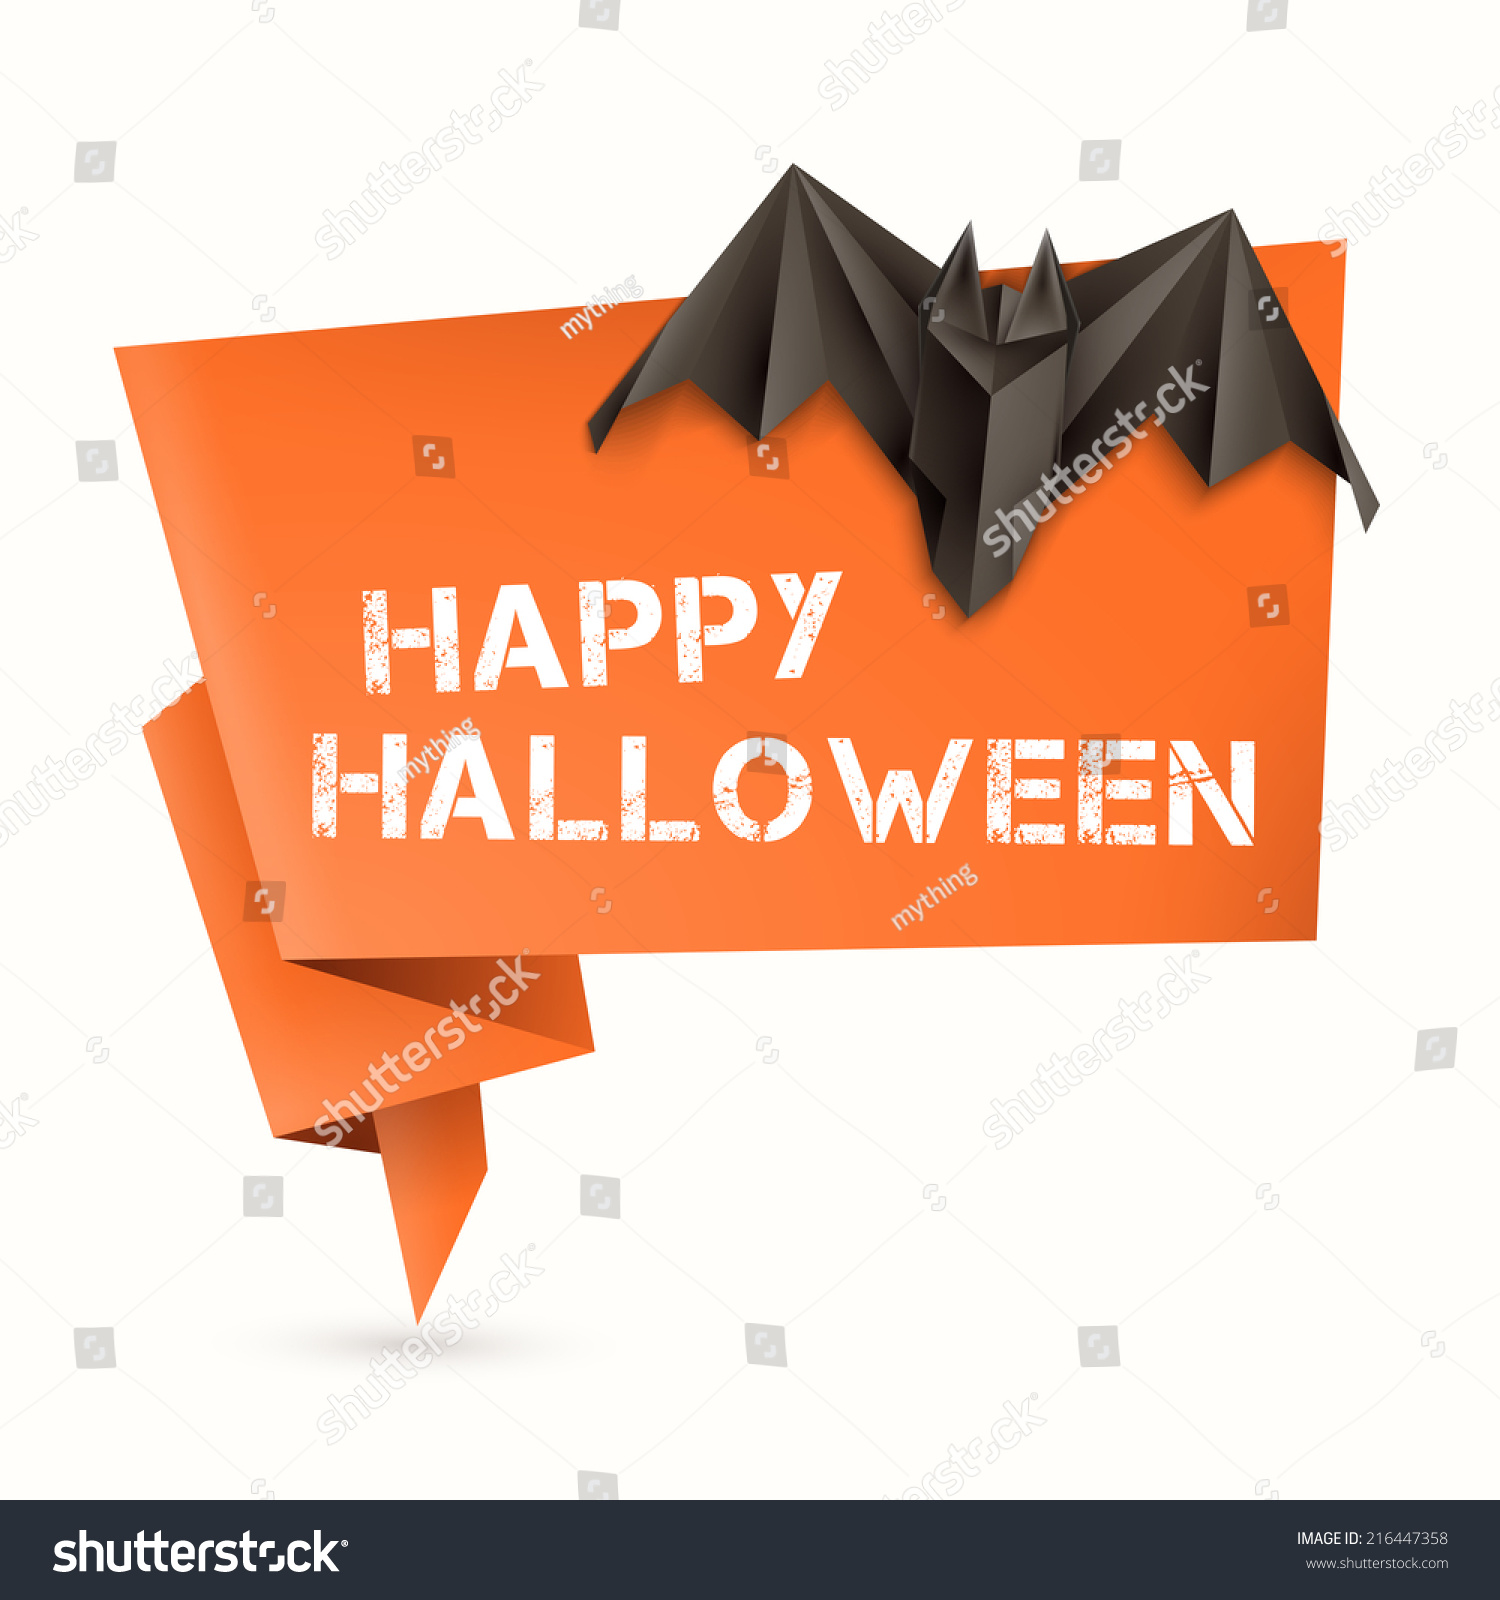 Halloween origami speech bubble origami bat stock vector 216447358 halloween origami speech bubble with origami bat vector illustration eps10 jeuxipadfo Gallery